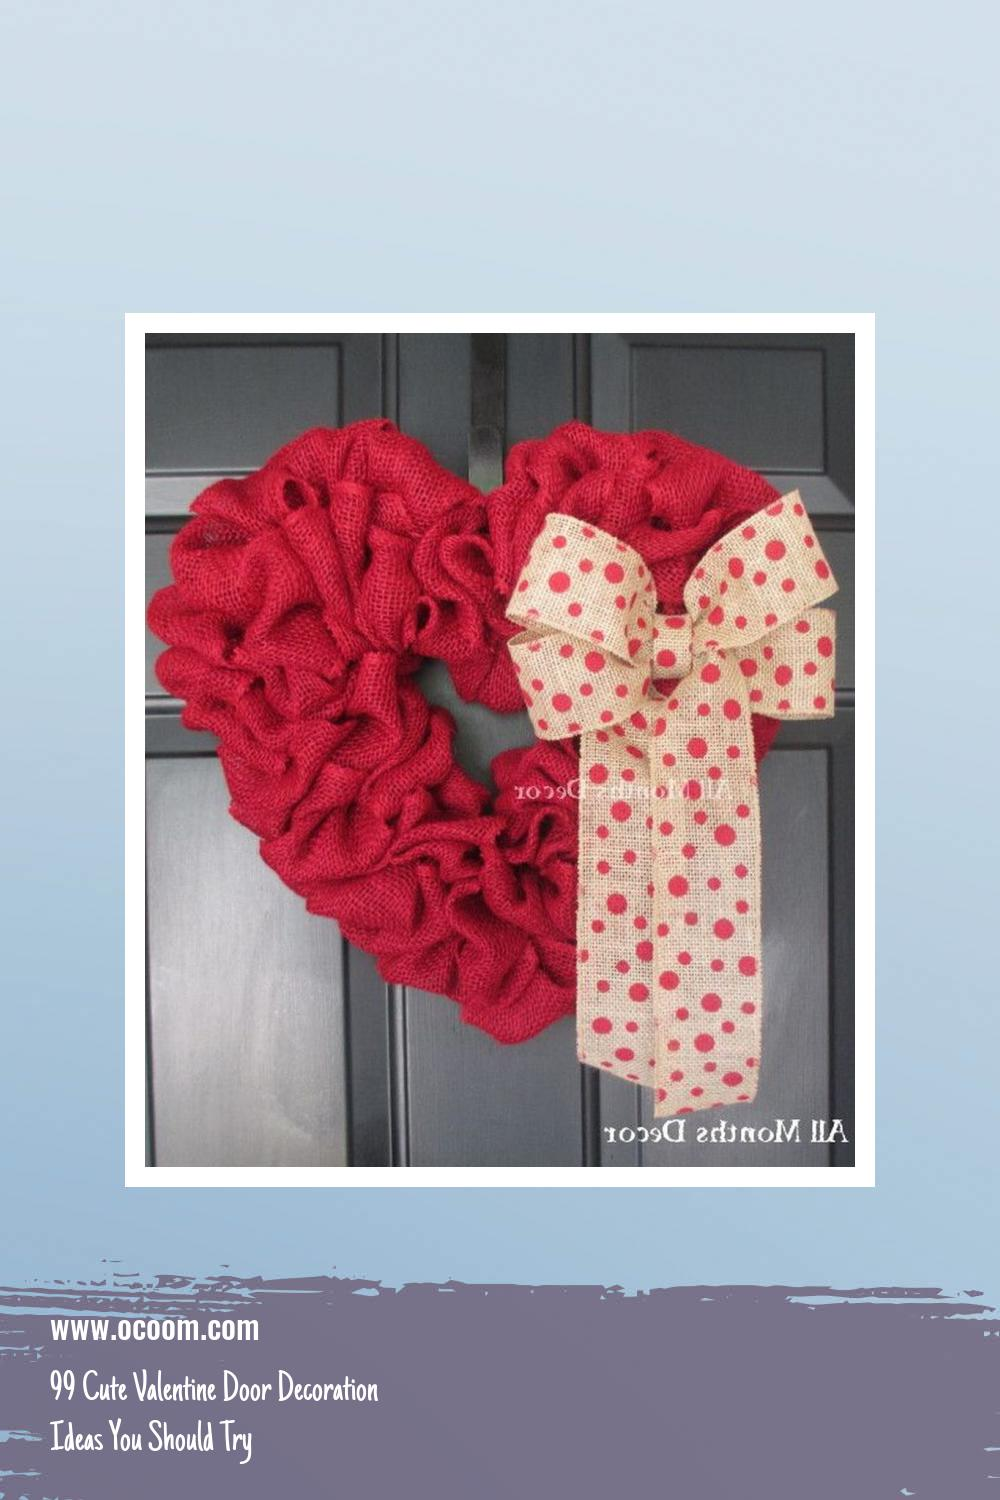 99 Cute Valentine Door Decoration Ideas You Should Try 24